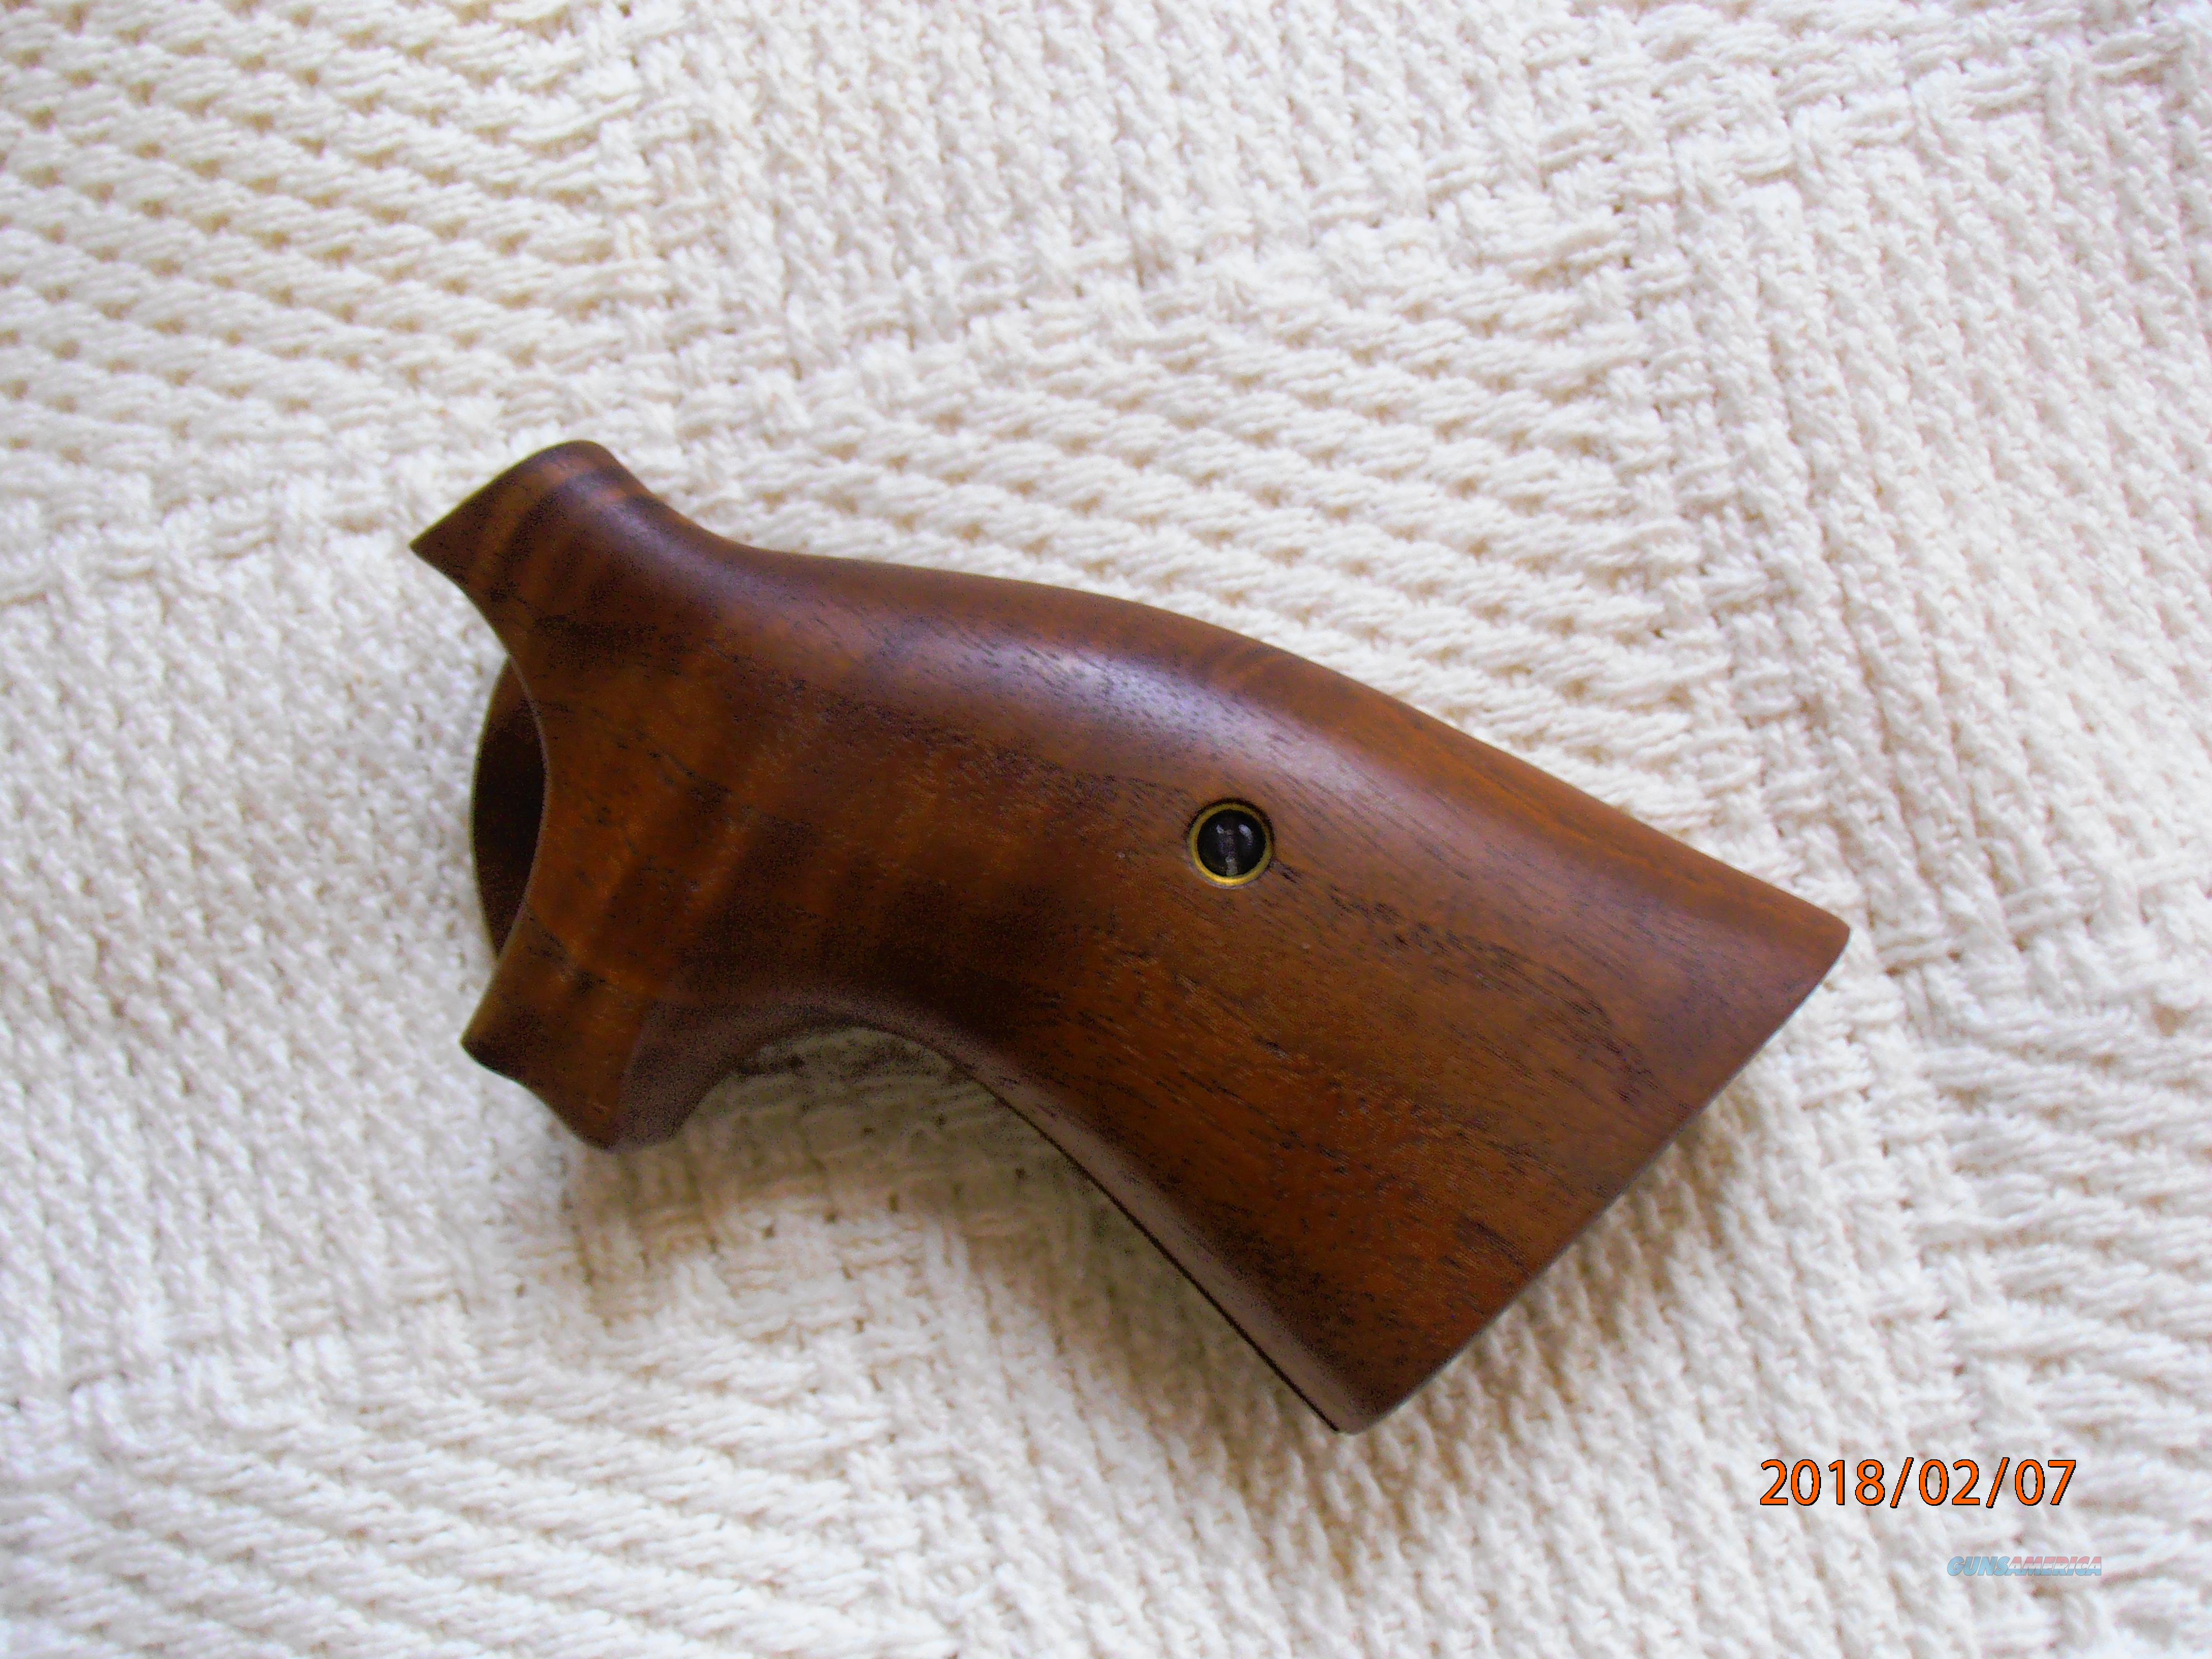 Jordan Trooper Grips for K-Frame  Non-Guns > Gunstocks, Grips & Wood